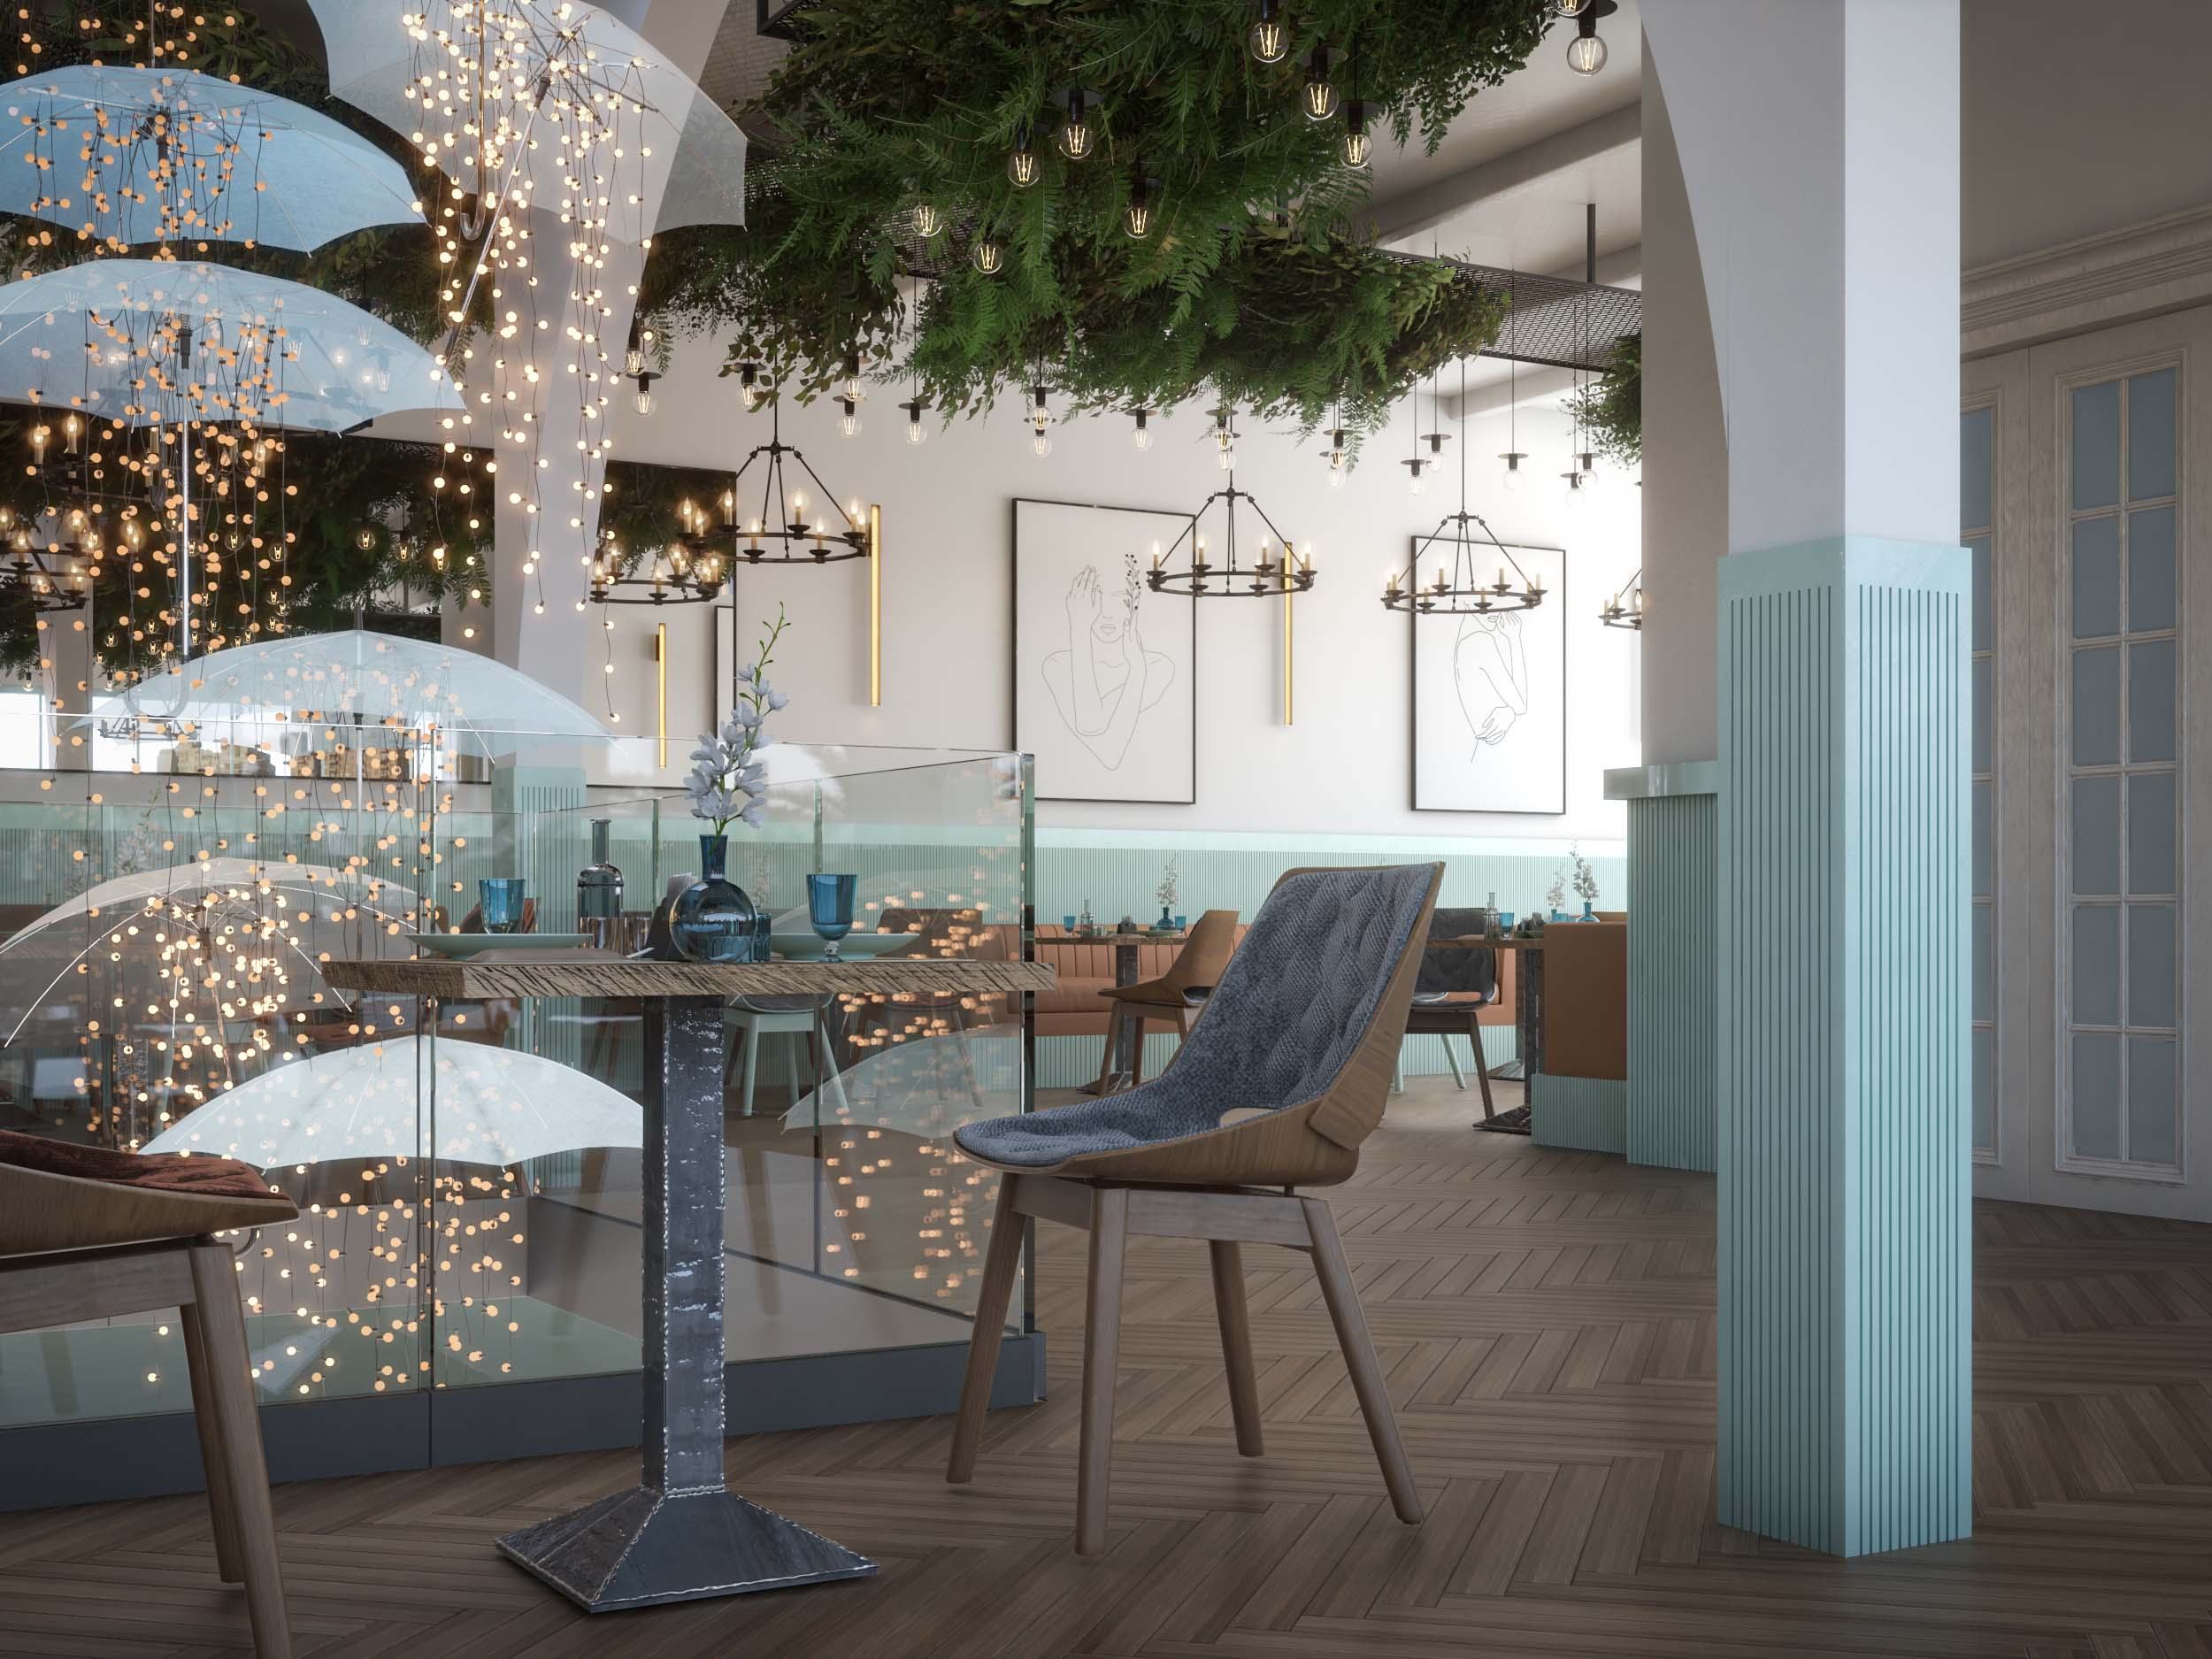 AMERICAN CAFE DESIGN -CAFE DESIGN BY HRarchZ - UMBRELLAS AND LIGHTS-